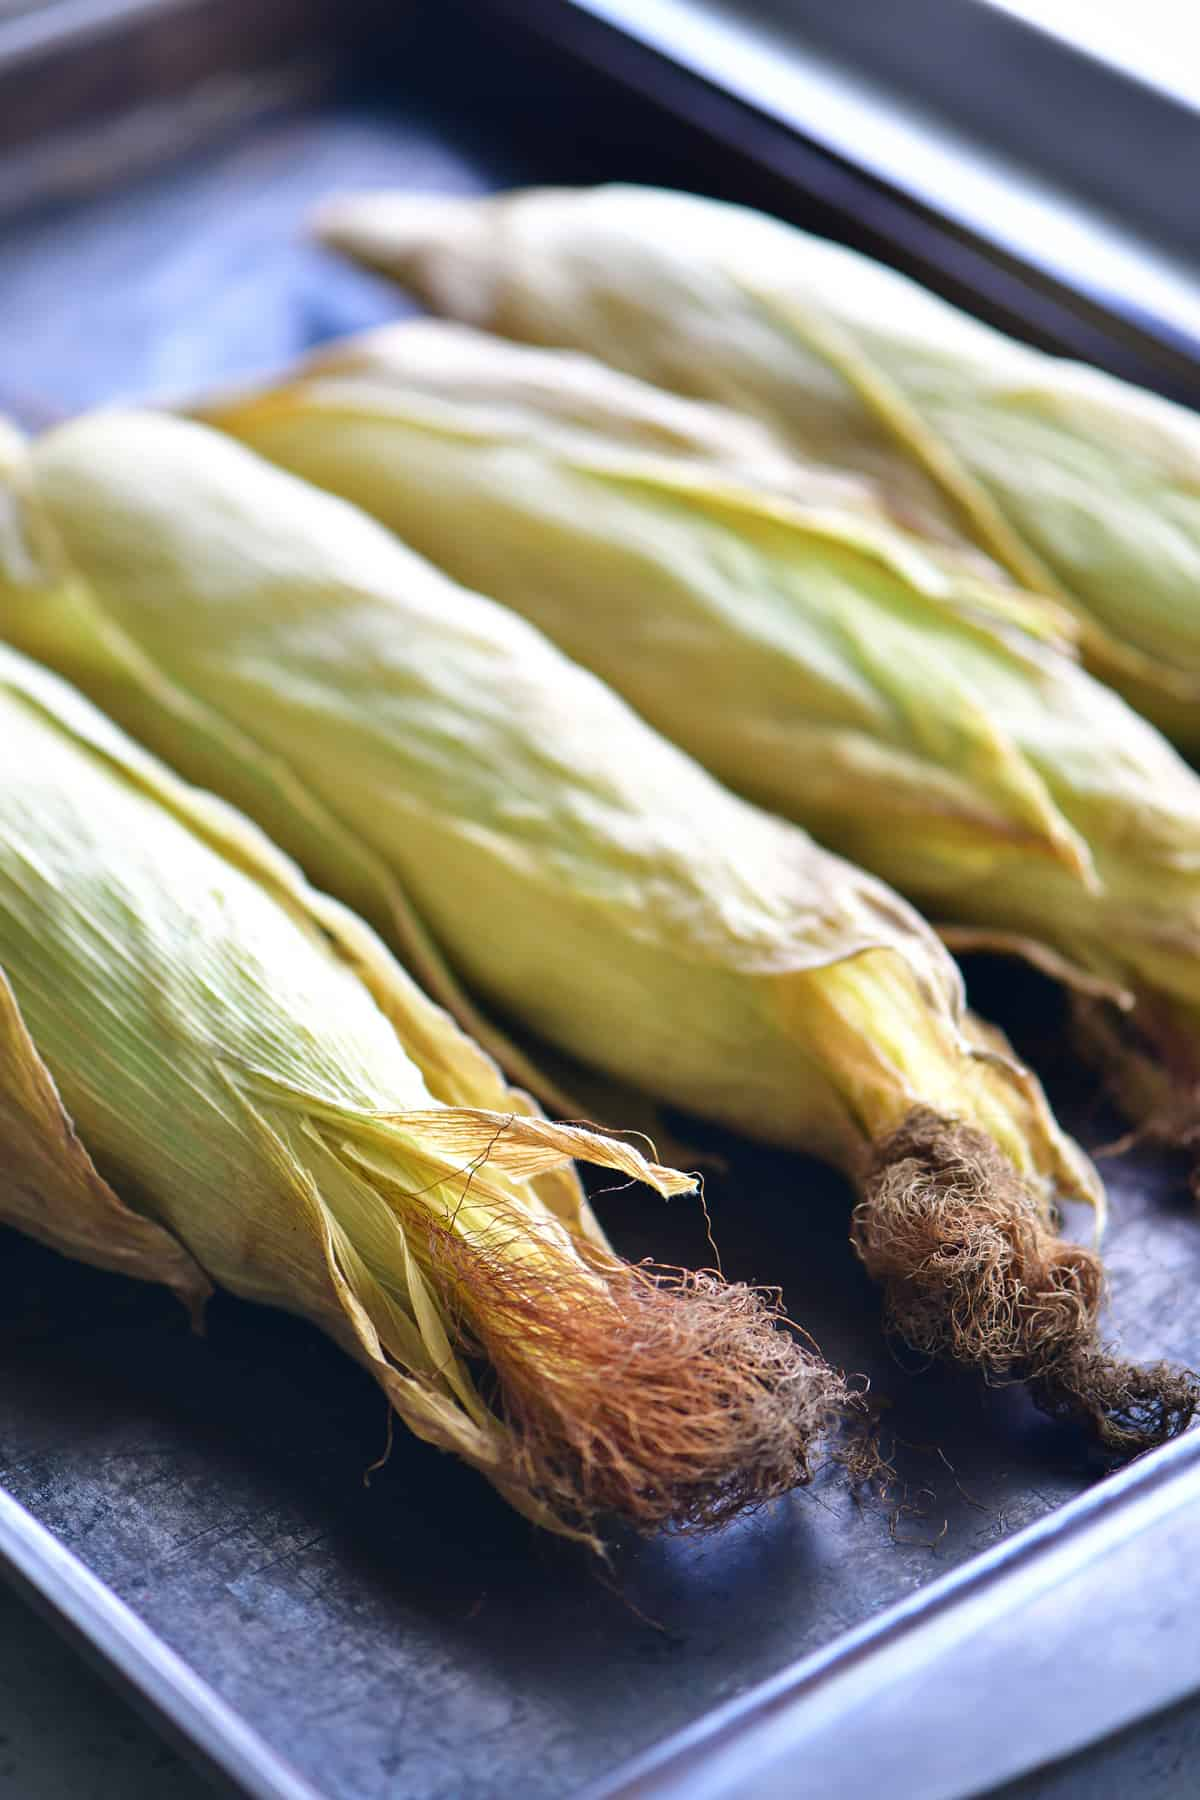 Oven roasted corn on the cob with the husks fully cooked